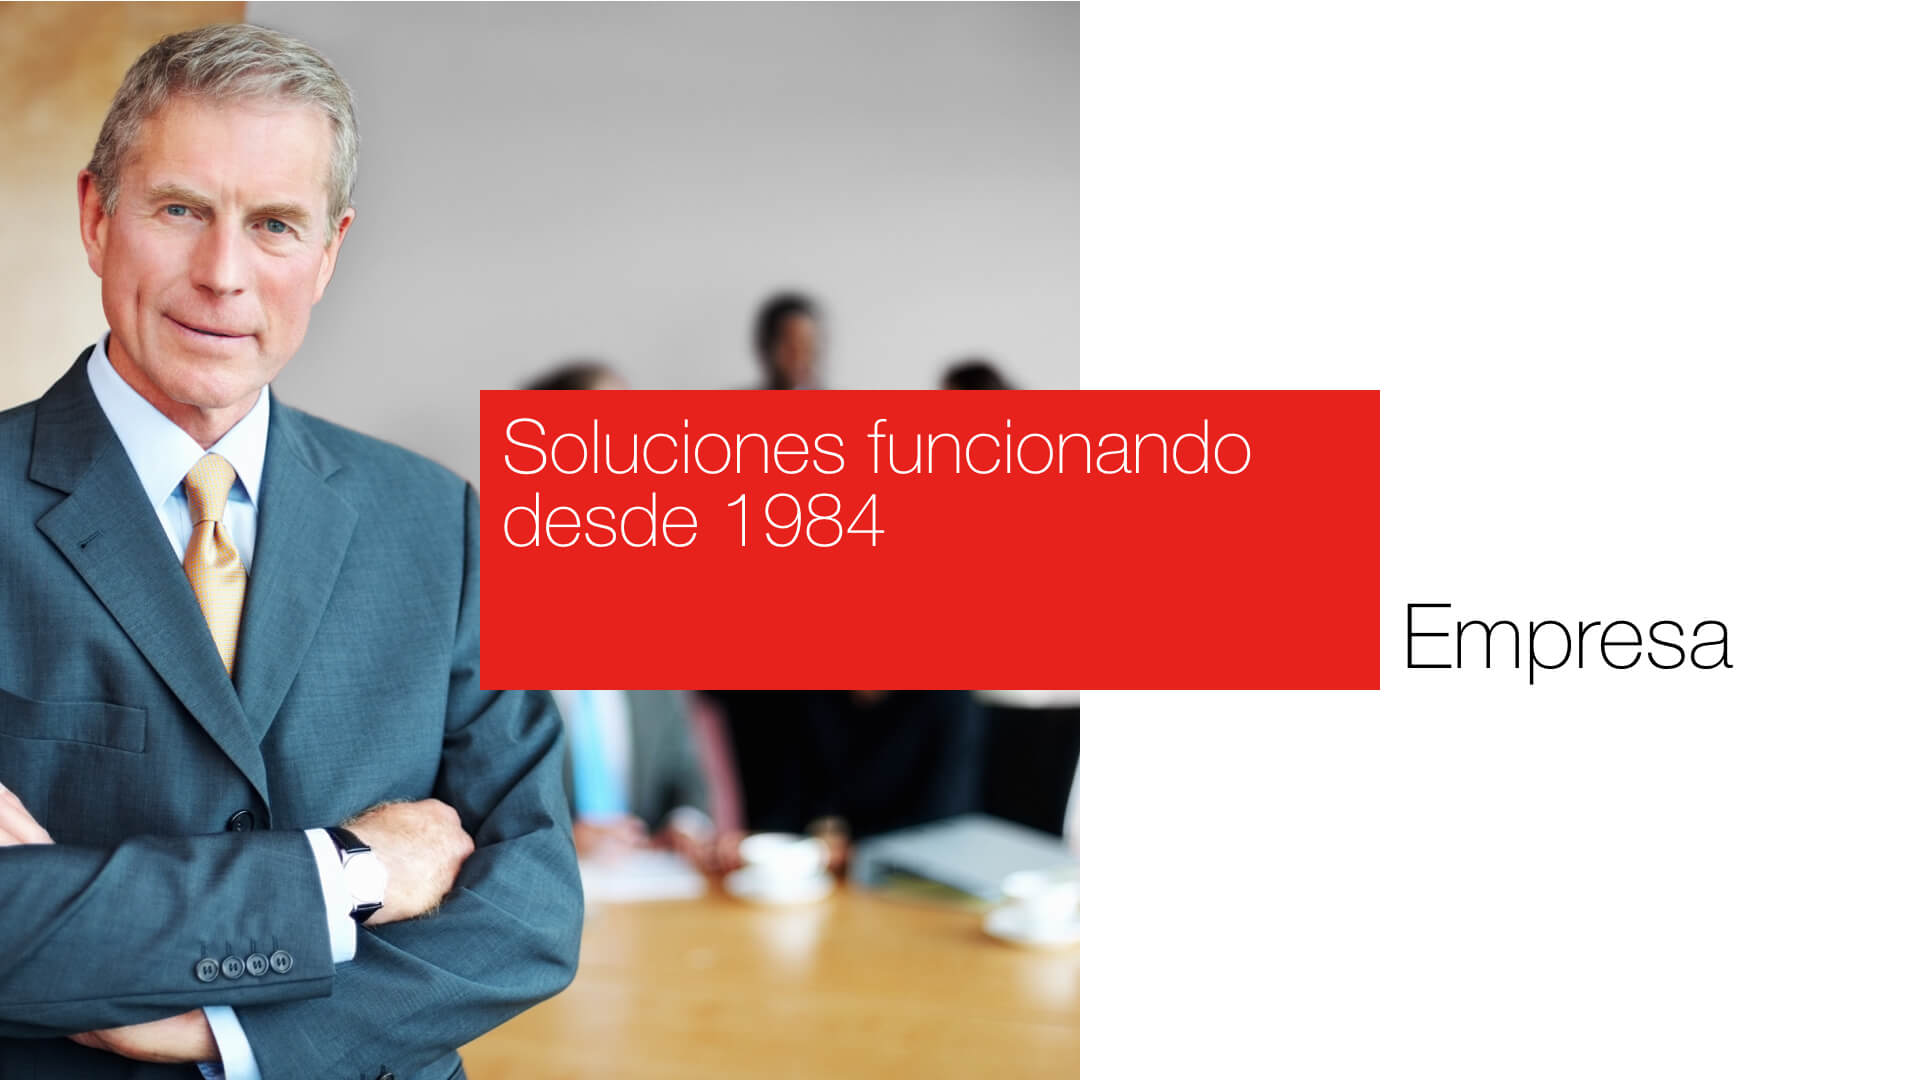 Transformación Digital, Automatización de procesos, Sistemas MES/MOM, Factory Intelligence, Business Intelligence Industrial, Fábricas, Empresa, Adasoft